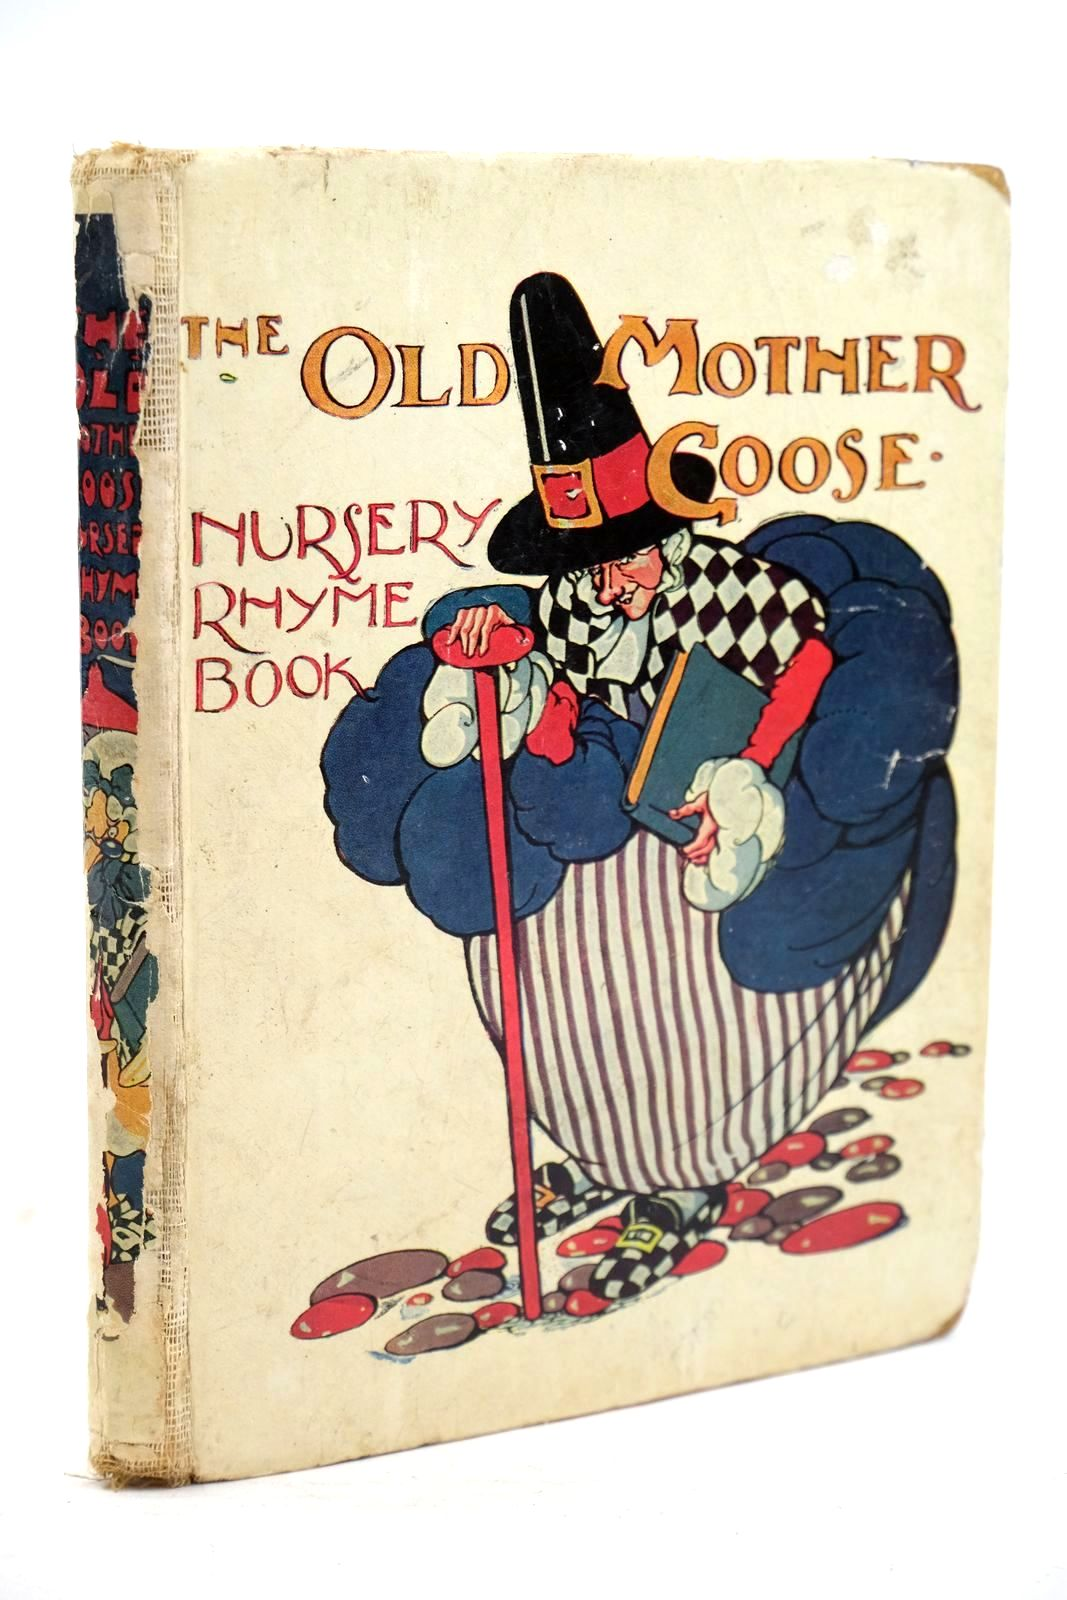 Photo of THE OLD MOTHER GOOSE NURSERY RHYME BOOK illustrated by Anderson, Anne published by Thomas Nelson and Sons Ltd. (STOCK CODE: 1320450)  for sale by Stella & Rose's Books